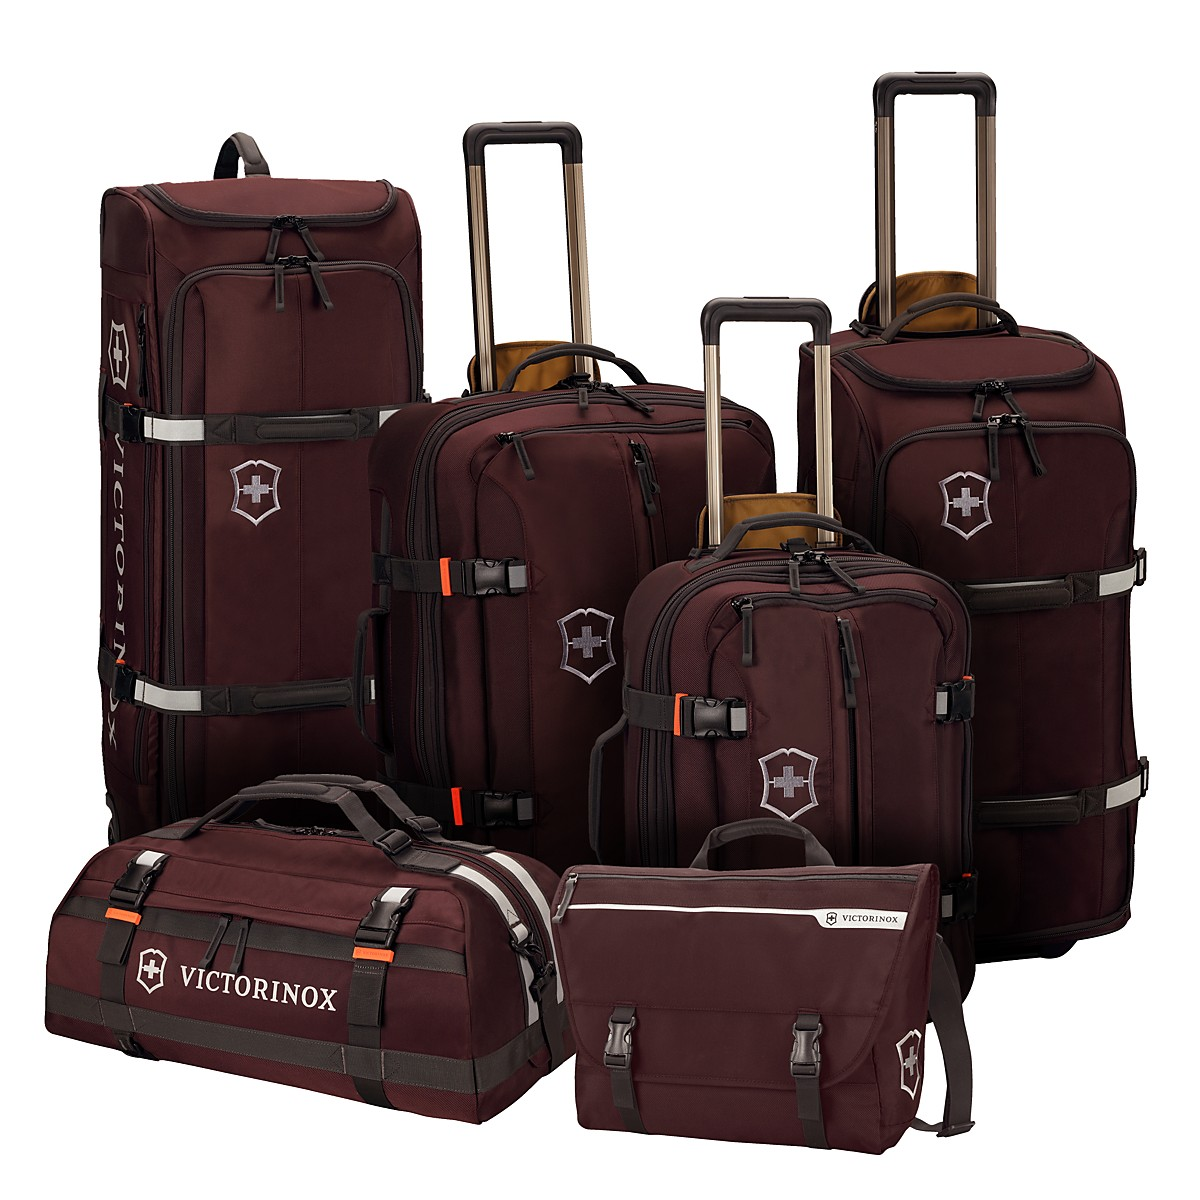 Best Luggage To Travel Light